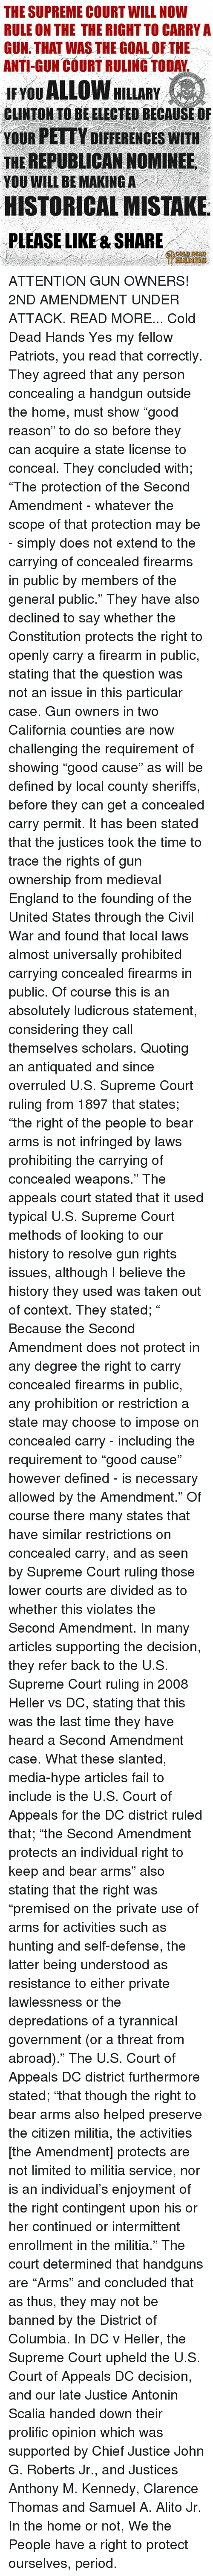 """upheld: THE SUPREME COURT WILL NOW  RULE ON THE THE RIGHT TO CARRY A  GUN THAT WAS THE GOAL OF THE  ANTI-GUN COURT RULING TODAY  ALLOW HILLARY  IF YOU  CLINTON TO BE ELECTED BECAUSE OF  YOUR PETTY DIFFERENCES WITH  THE REPUBLICAN NOMINEE  YOU WILL BE MAKING A  HISTORICAL MISTAKE  PLEASE LIKE & SHARE ATTENTION GUN OWNERS! 2ND AMENDMENT UNDER ATTACK. READ MORE... Cold Dead Hands  Yes my fellow Patriots, you read that correctly. They agreed that any person concealing a handgun outside the home, must show """"good reason"""" to do so before they can acquire a state license to conceal.  They concluded with; """"The protection of the Second Amendment - whatever the scope of that protection may be - simply does not extend to the carrying of concealed firearms in public by members of the general public.""""  They have also declined to say whether the Constitution protects the right to openly carry a firearm in public, stating that the question was not an issue in this particular case.  Gun owners in two California counties are now challenging the requirement of showing """"good cause"""" as will be defined by local county sheriffs, before they can get a concealed carry permit. It has been stated that the justices took the time to trace the rights of gun ownership from medieval England to the founding of the United States through the Civil War and found that local laws almost universally prohibited carrying concealed firearms in public. Of course this is an absolutely ludicrous statement, considering they call themselves scholars.  Quoting an antiquated and since overruled U.S. Supreme Court ruling from 1897 that states; """"the right of the people to bear arms is not infringed by laws prohibiting the carrying of concealed weapons.""""   The appeals court stated that it used typical U.S. Supreme Court methods of looking to our history to resolve gun rights issues, although I believe the history they used was taken out of context.  They stated; """" Because the Second Amendment does not protect in any """